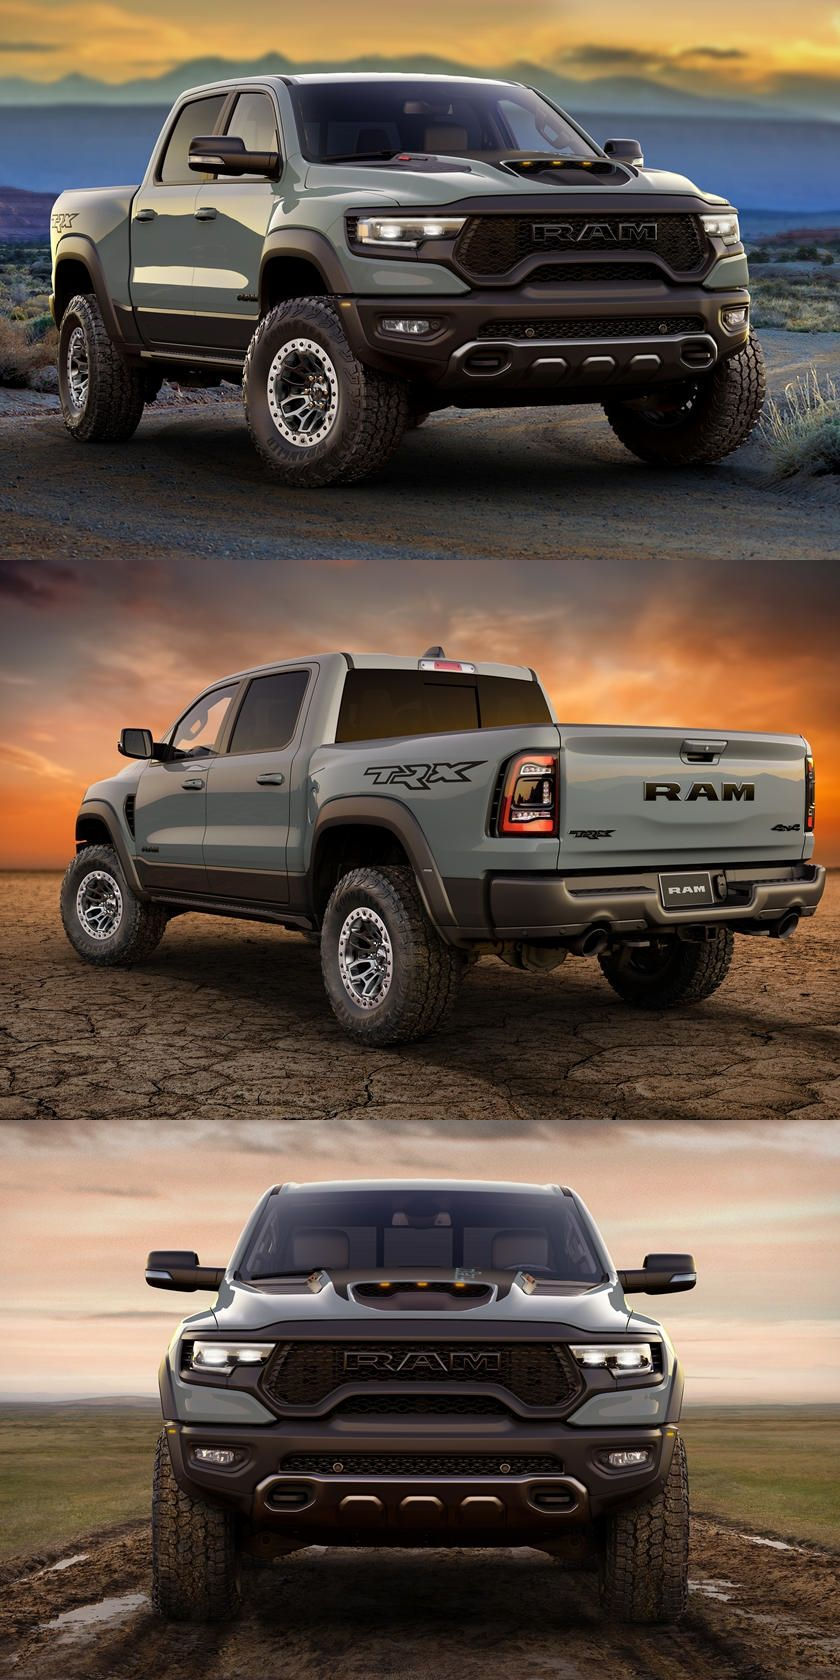 2021 Ram 1500 Trx Launch Edition Will Be A Very Rare Truck This Is Going To Sell Out Fast In 2020 Ram 1500 Trx Trucks